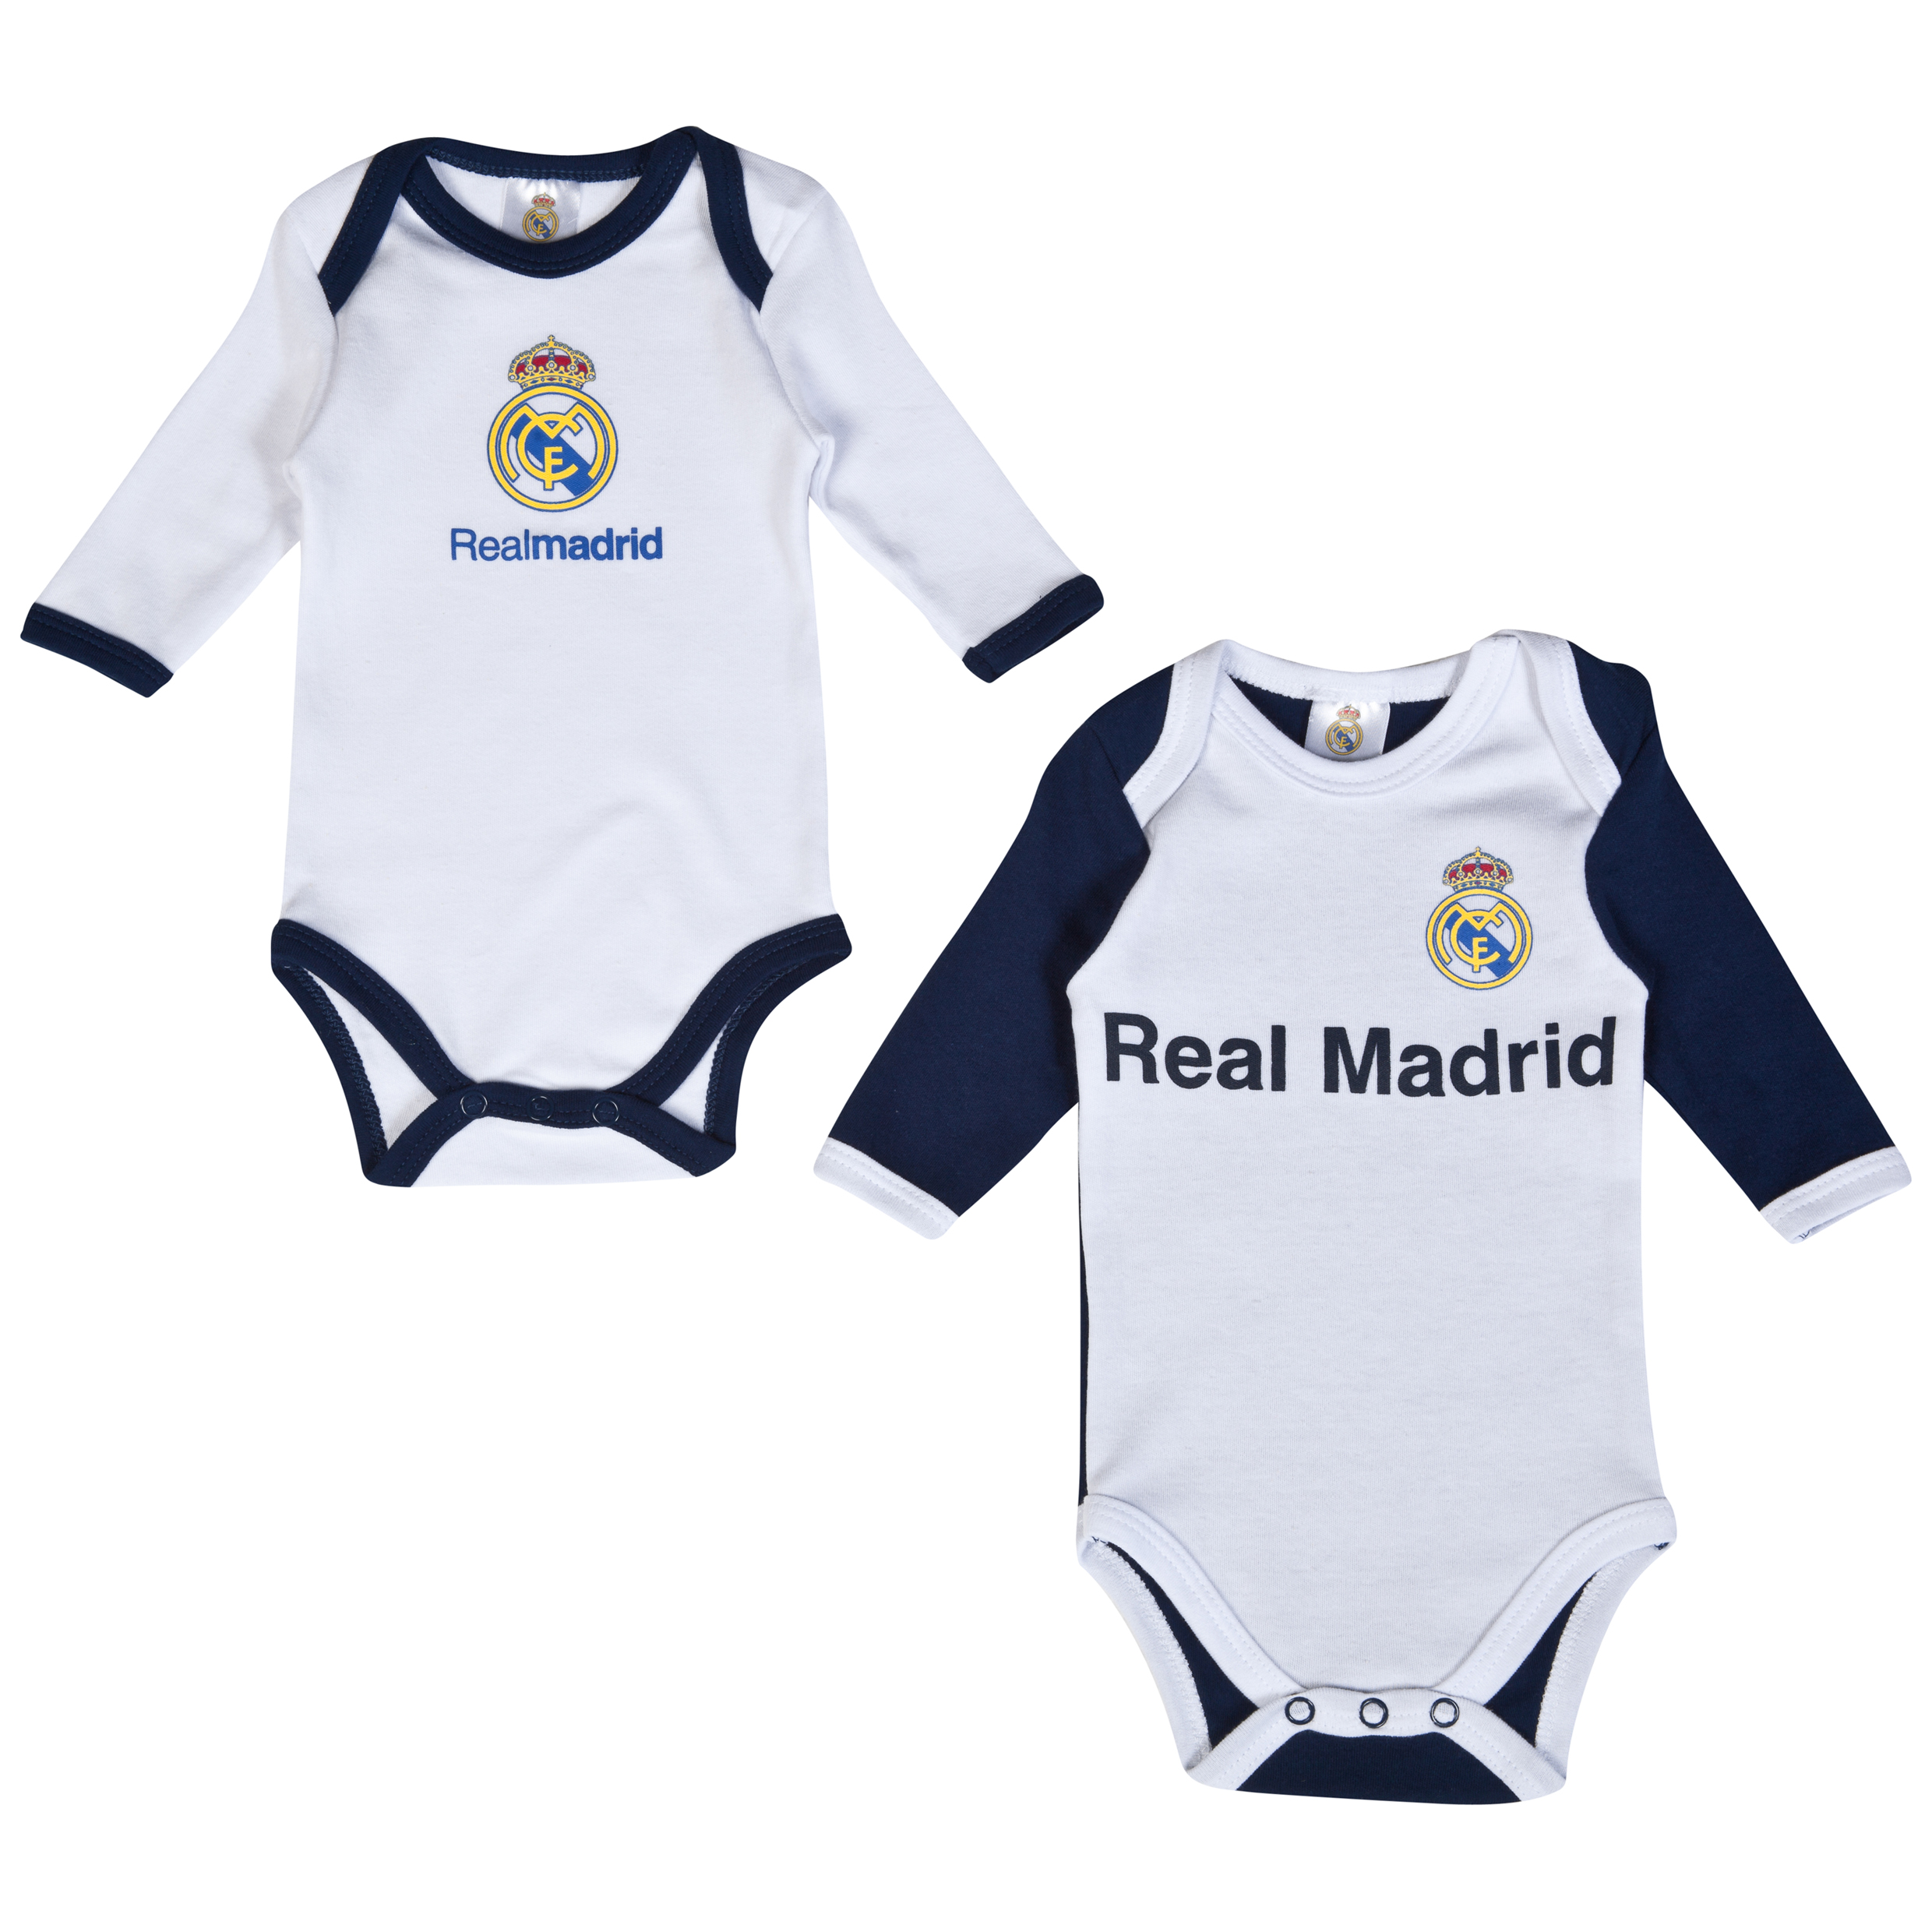 Real Madrid 2 PK Bodysuits - Baby White